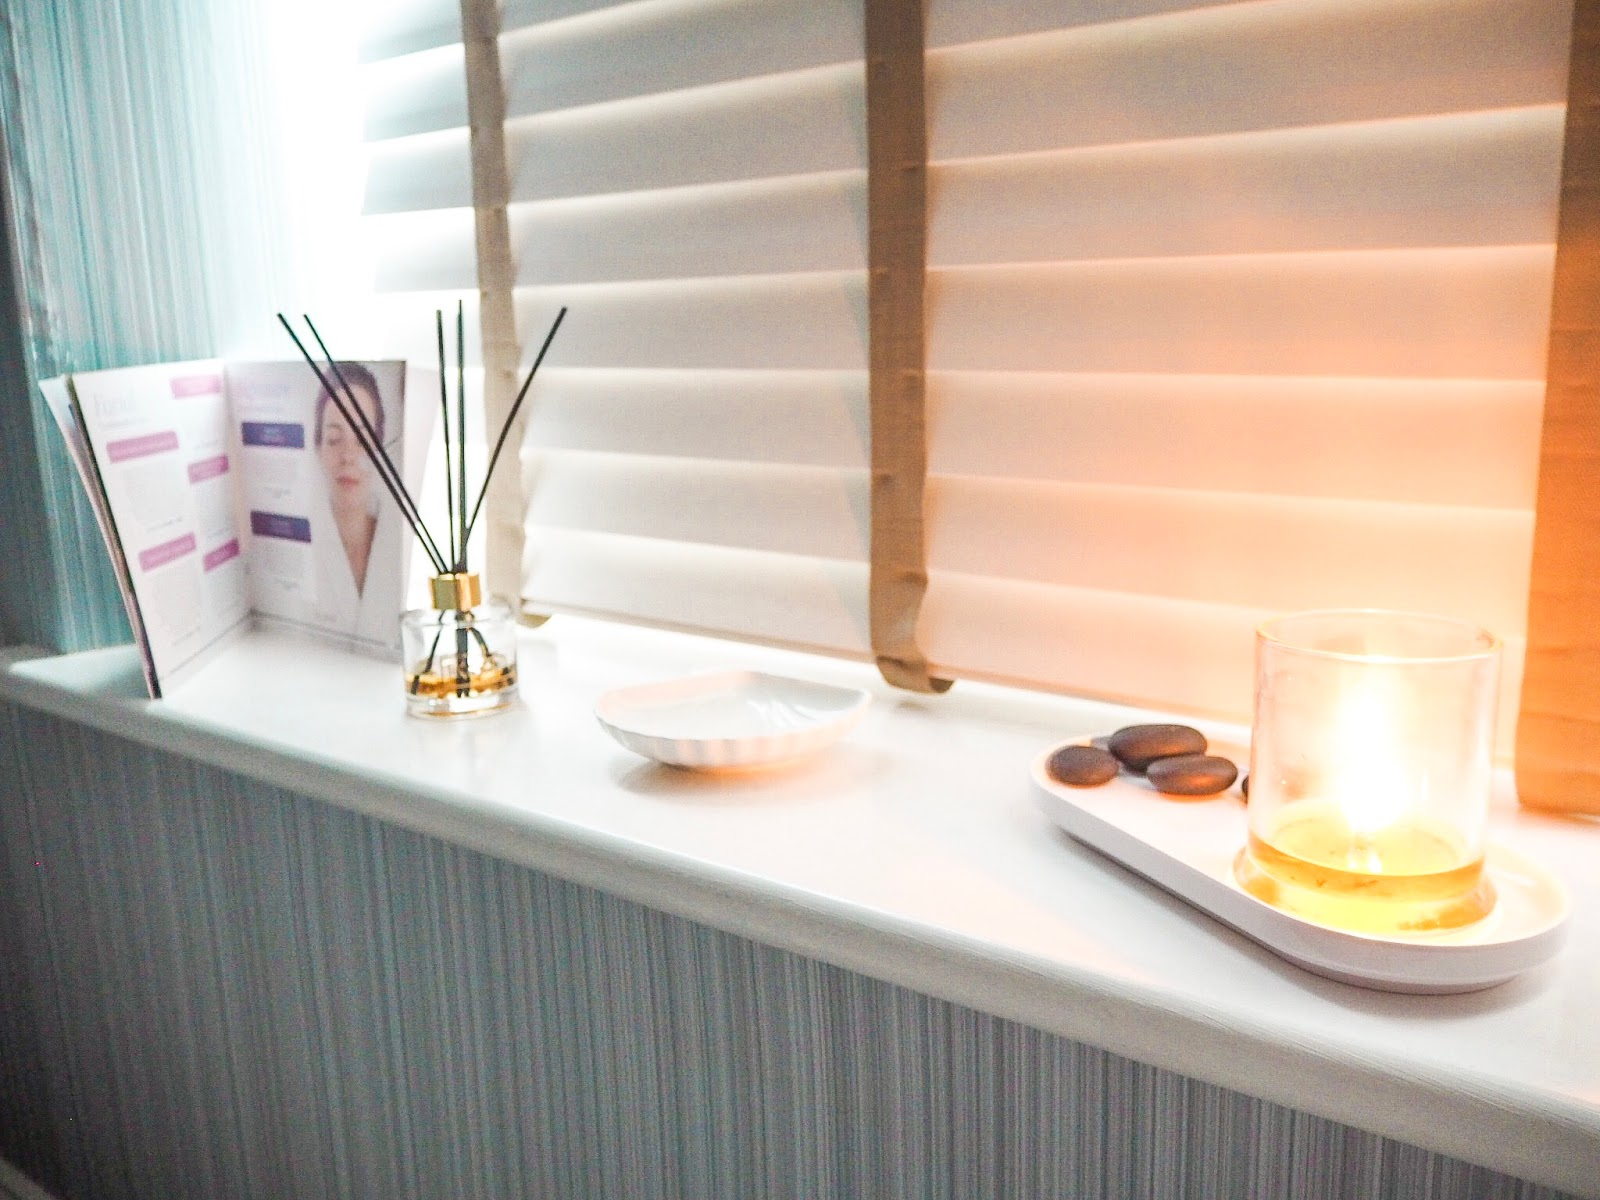 Spa Series: St Brelades Bay Hotel, Katie Kirk Loves, Spa Series,UK Spas, UK Blogger, Spa Blogger, St Brelades Bay Hotel Jersey, Saint Brelade Jersey, Jersey Channel Islands, Hotel Blogger, Travel Blogger, Skincare Blogger, Caudalie Skincare